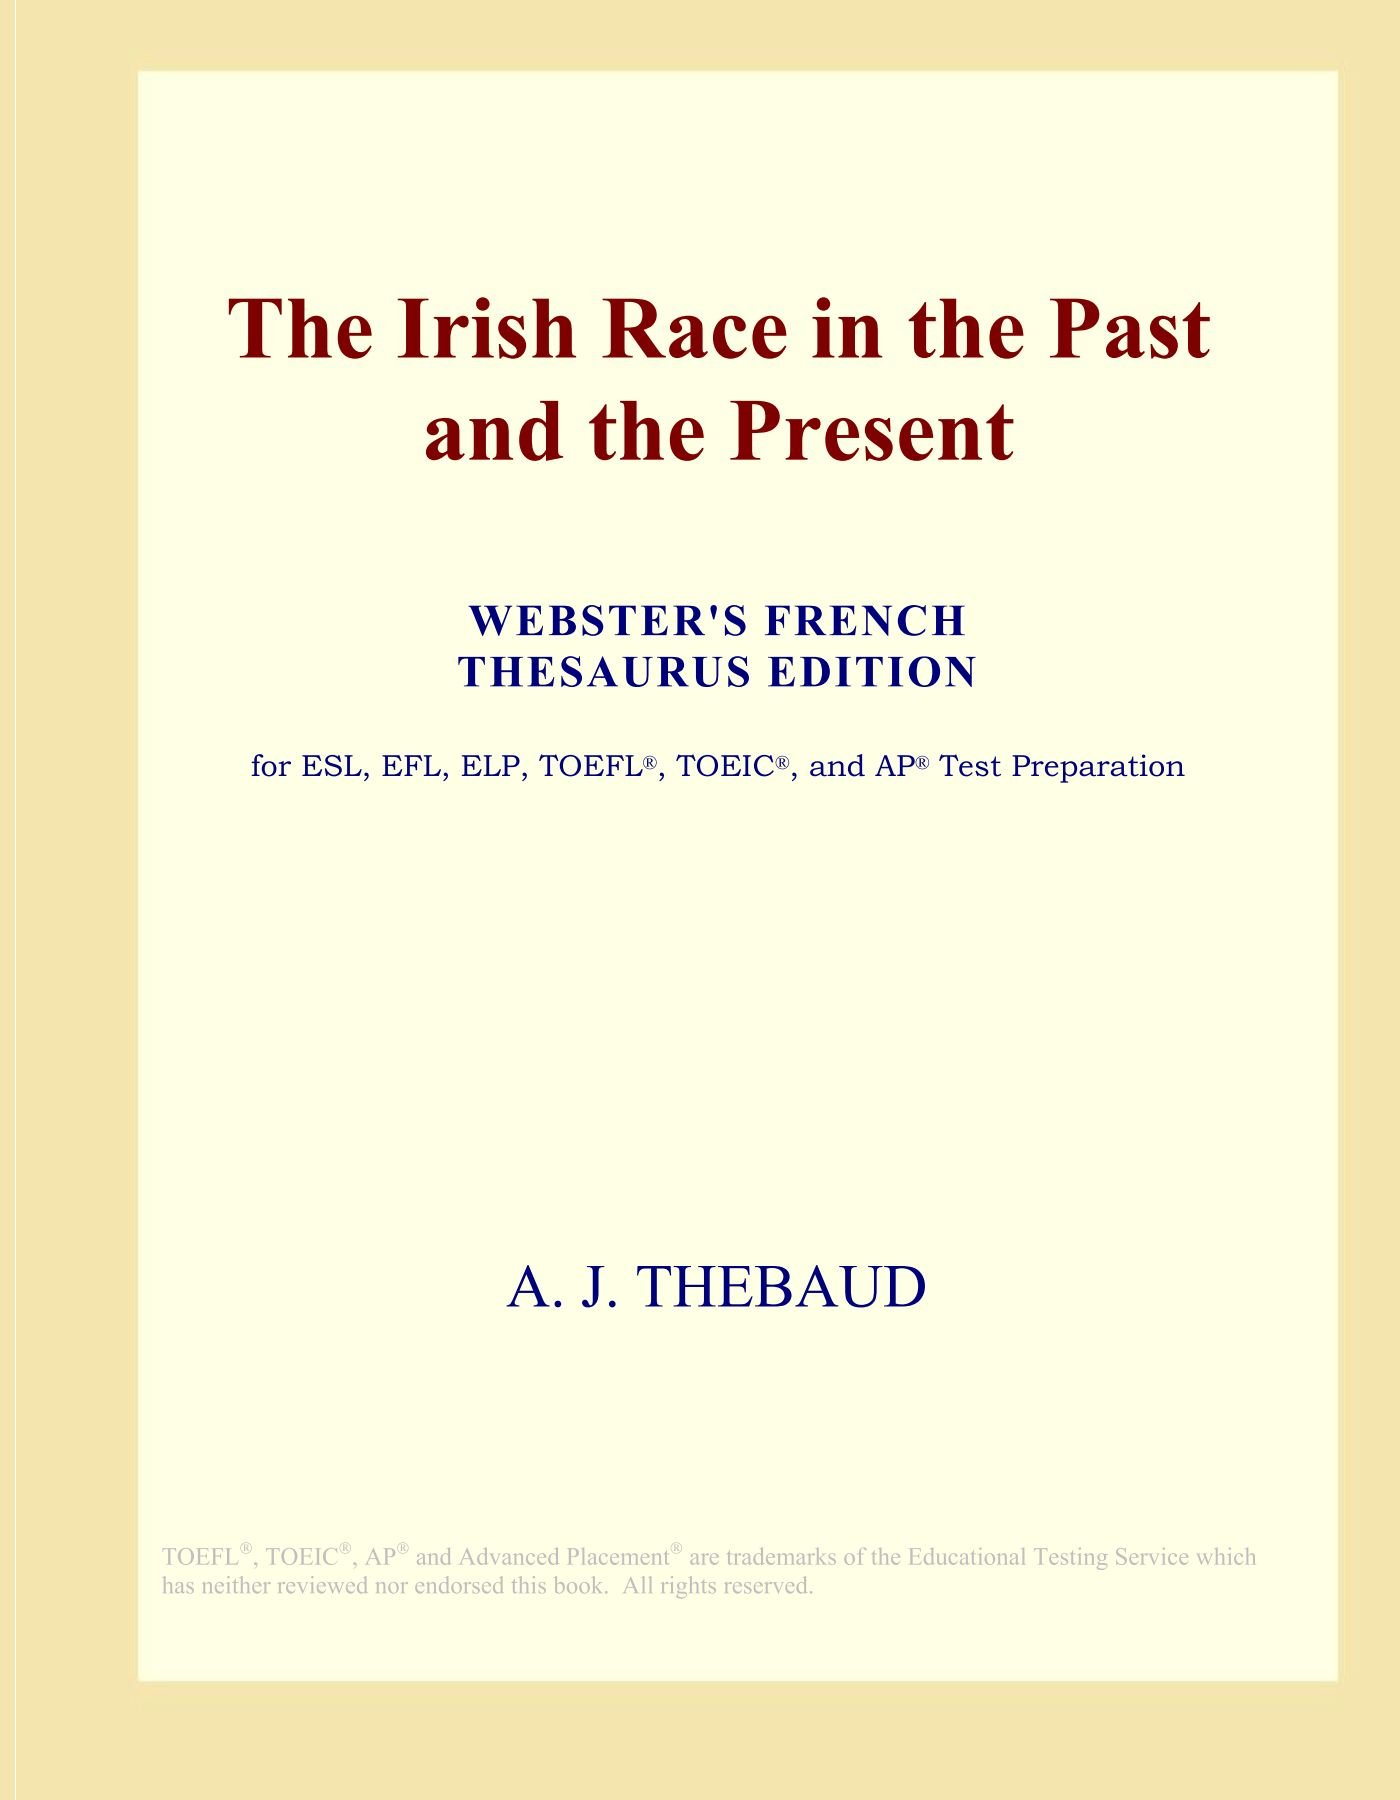 Download The Irish Race in the Past and the Present (Webster's French Thesaurus Edition) pdf epub